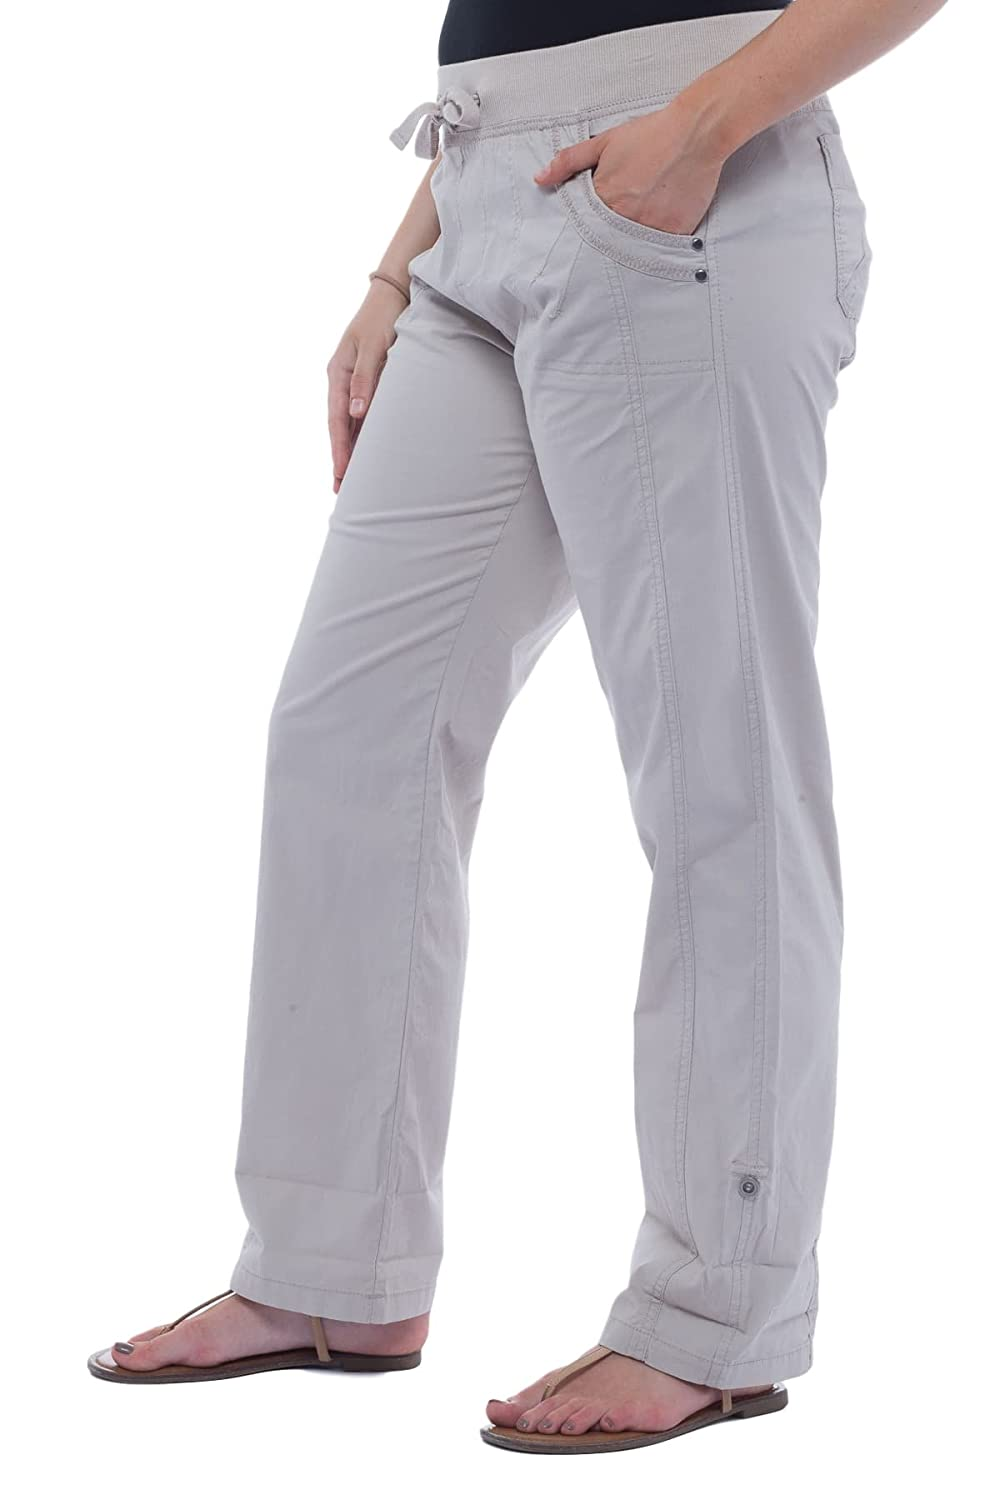 f6ad6de59f03 Alki'i Women's Loose Fit Summer Pants with Roll-up Leg 2161 at Amazon  Women's Clothing store: